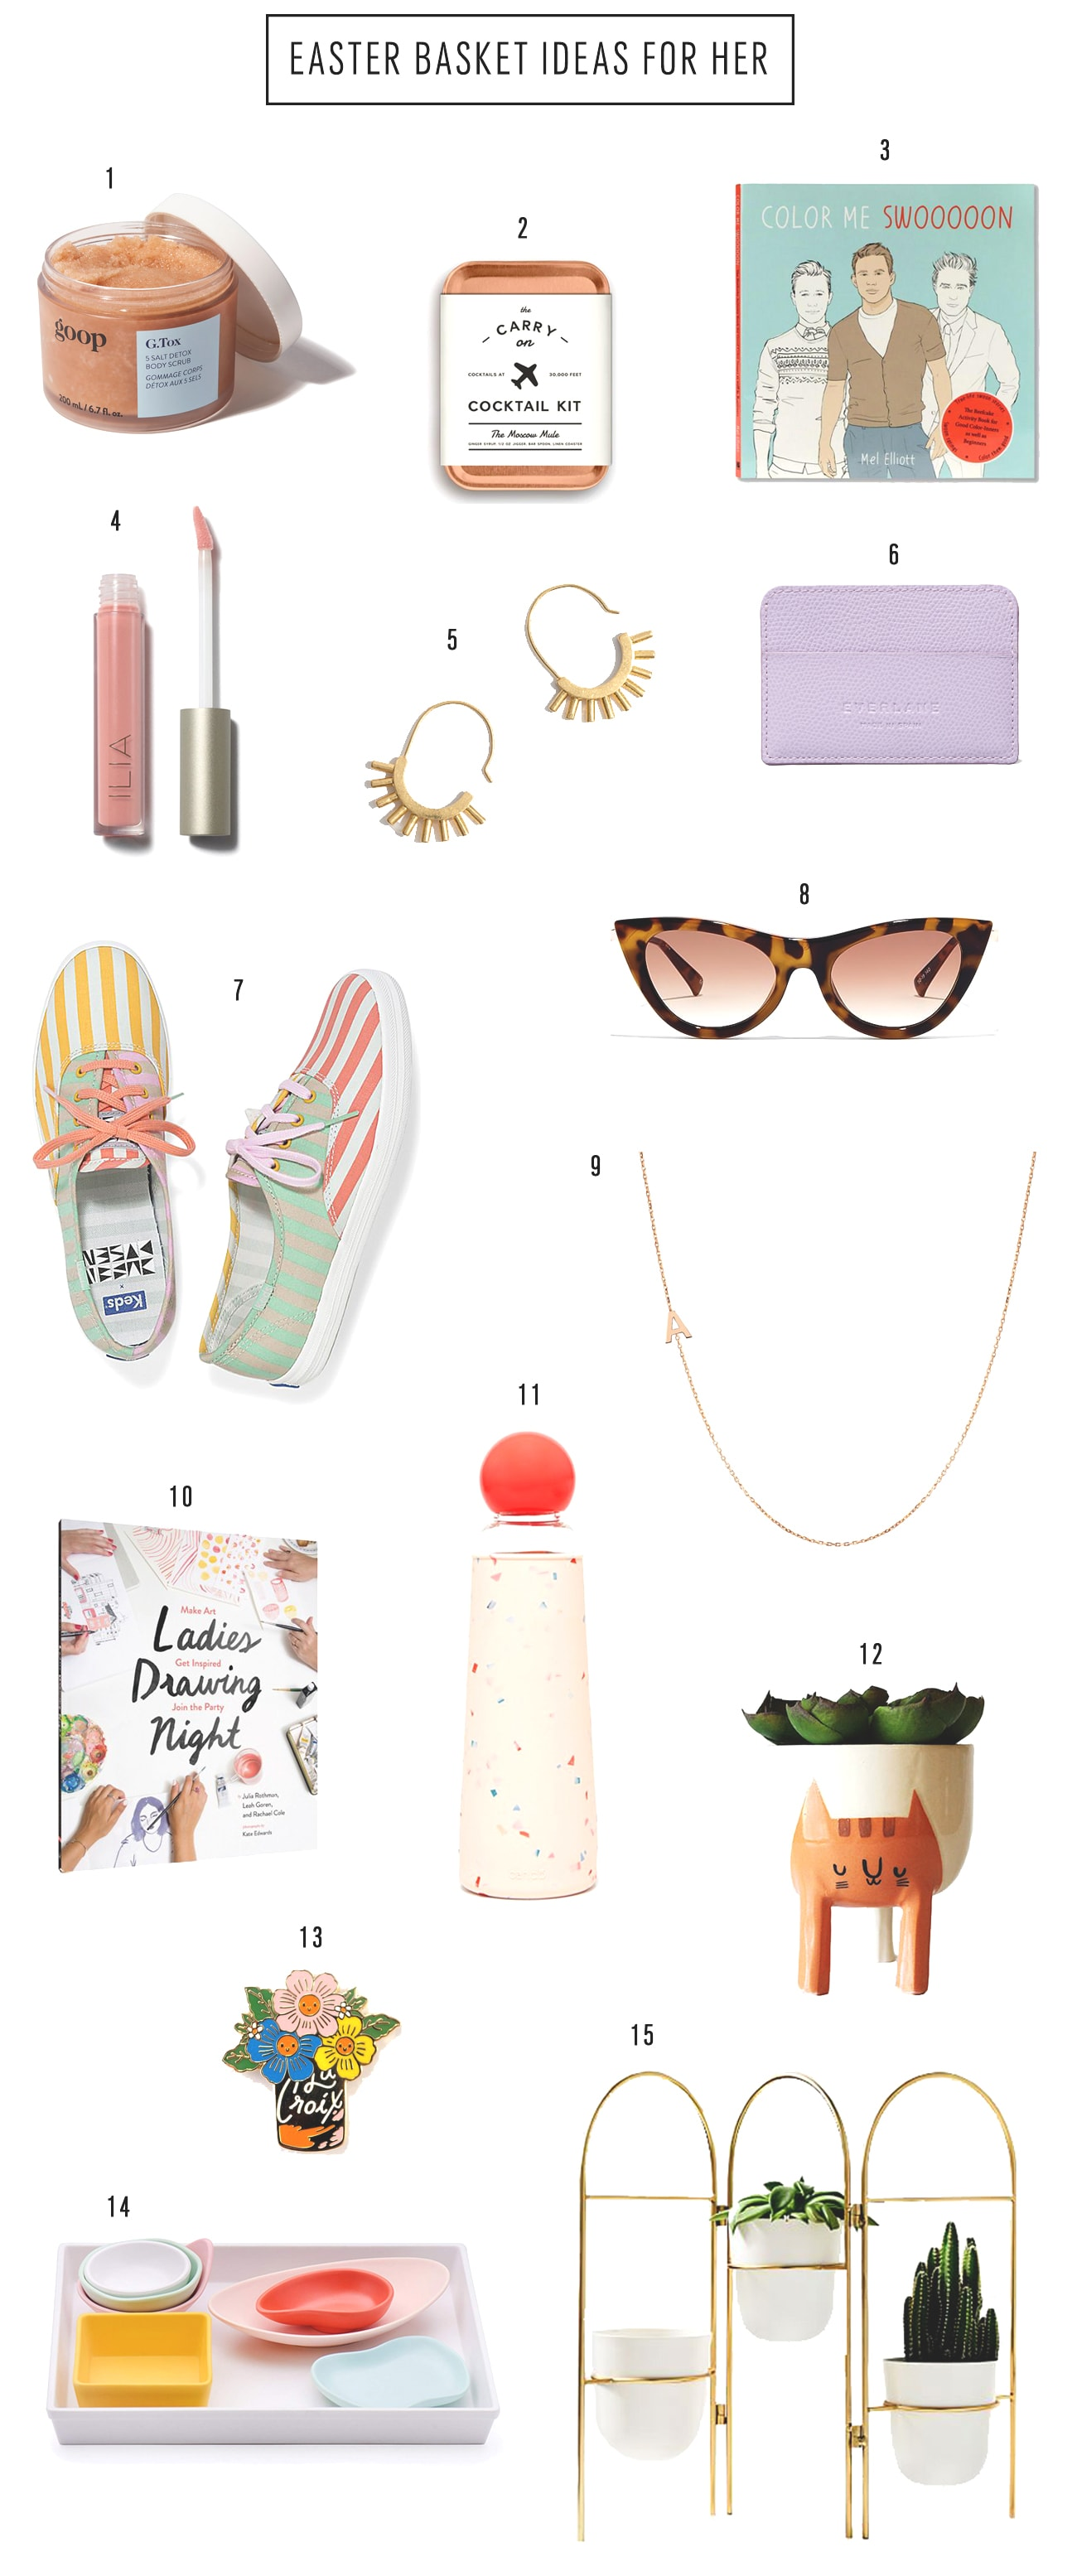 Easter Basket Ideas For Herby top Houston lifestyle blogger Ashley Rose of Sugar & Cloth #easter #easterbasket